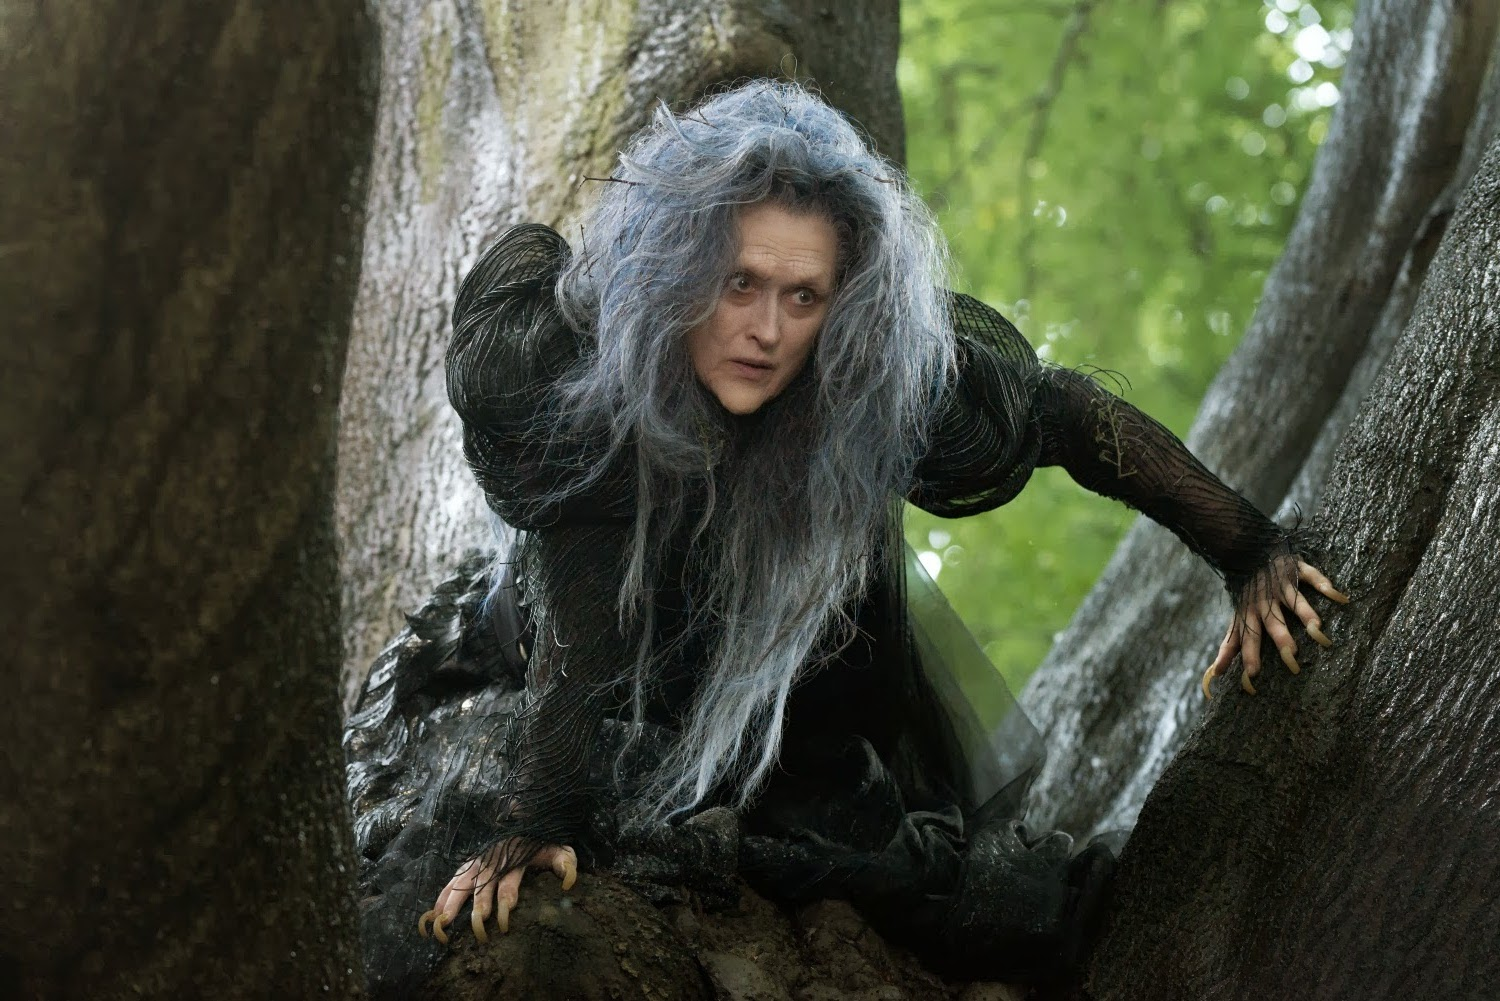 Meryl Streep plays the Witch in Disney's film adaptation of Into The Woods